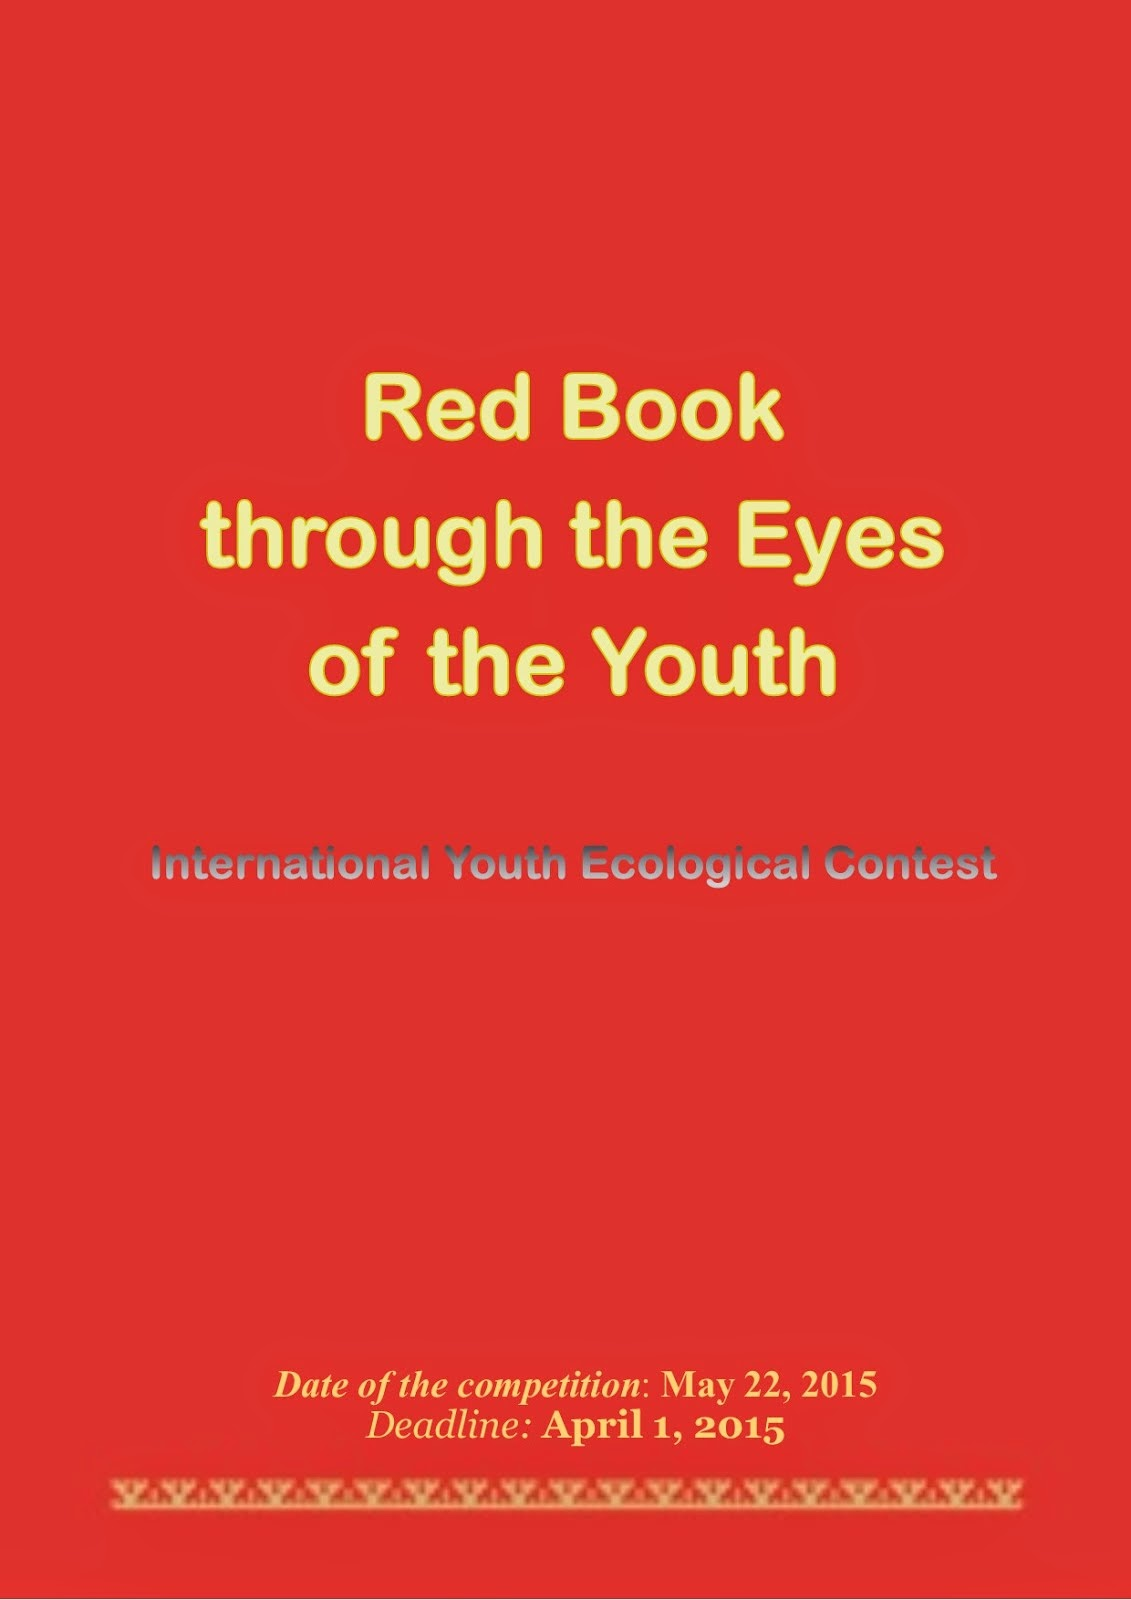 Red Book through the Eyes of the Youth